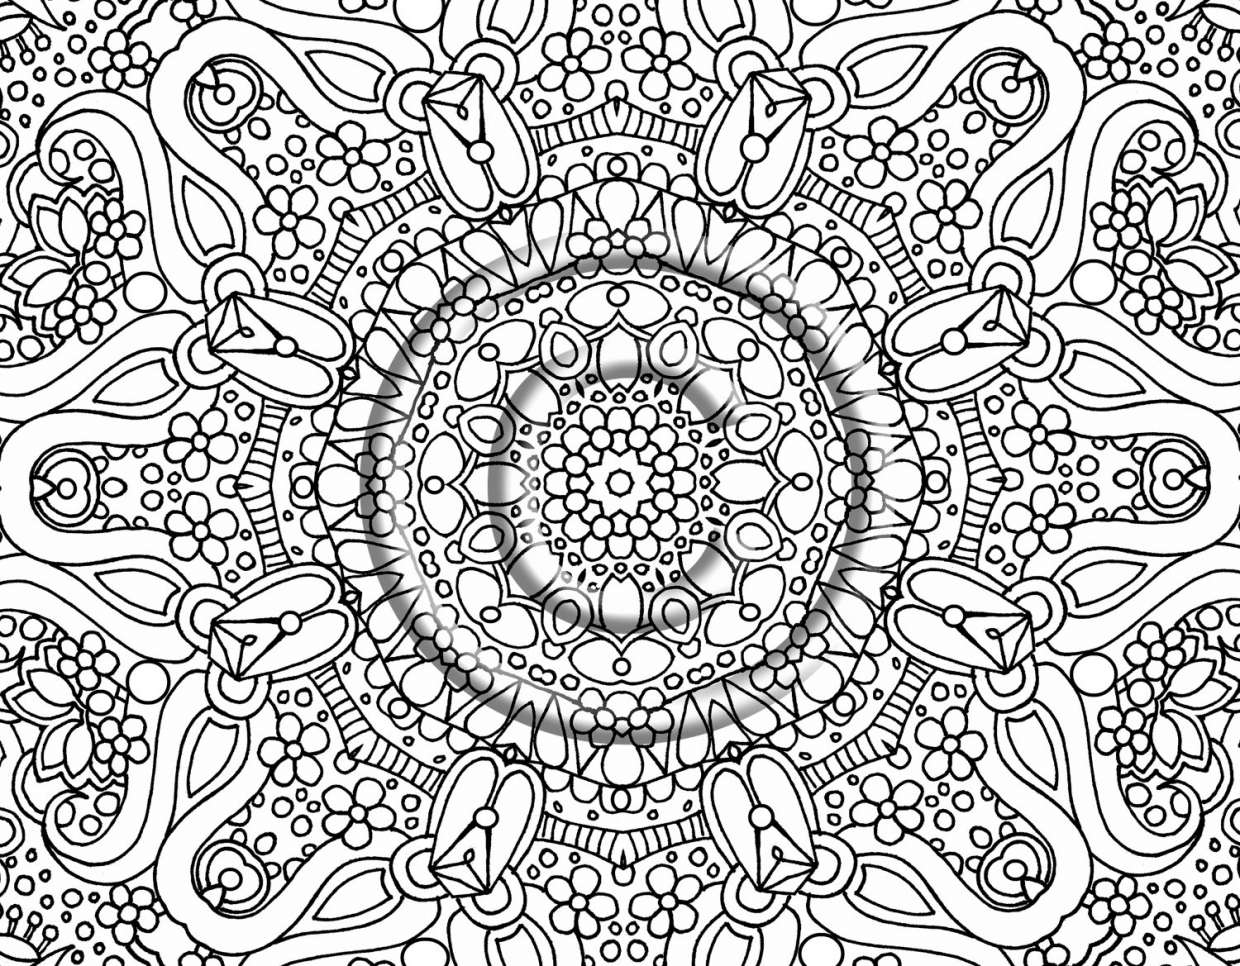 Get This Free Complex Coloring Pages to Print for Adults ...